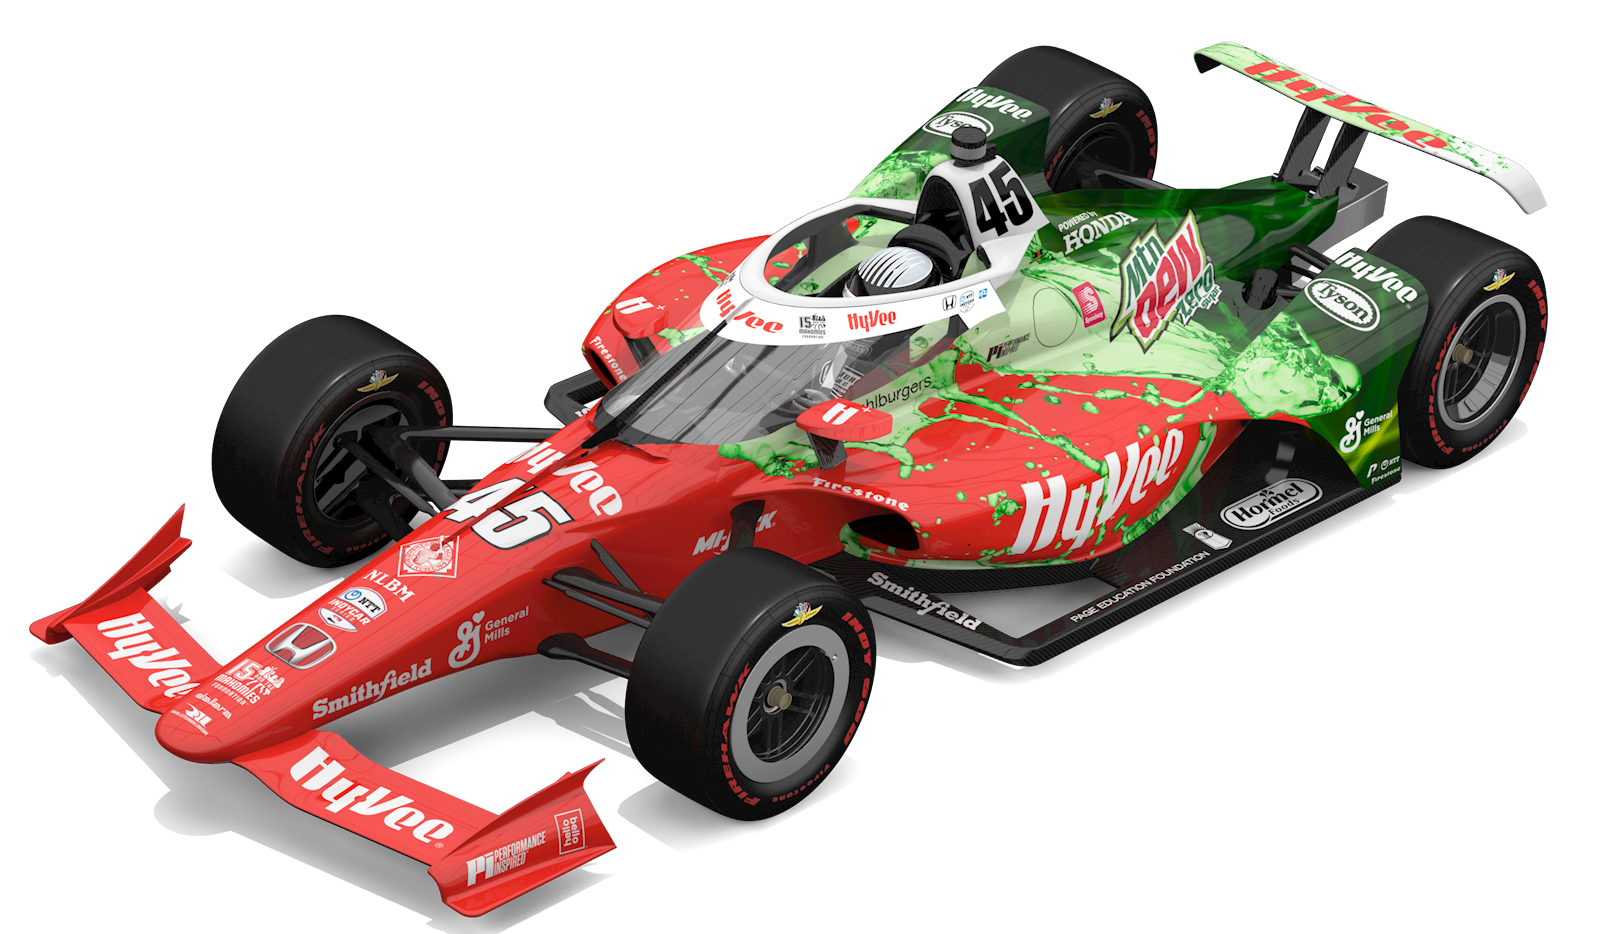 Hy-Vee-Sponsored Cars Race for the Checkered Flag in the 105th Running of the Indianapolis 500